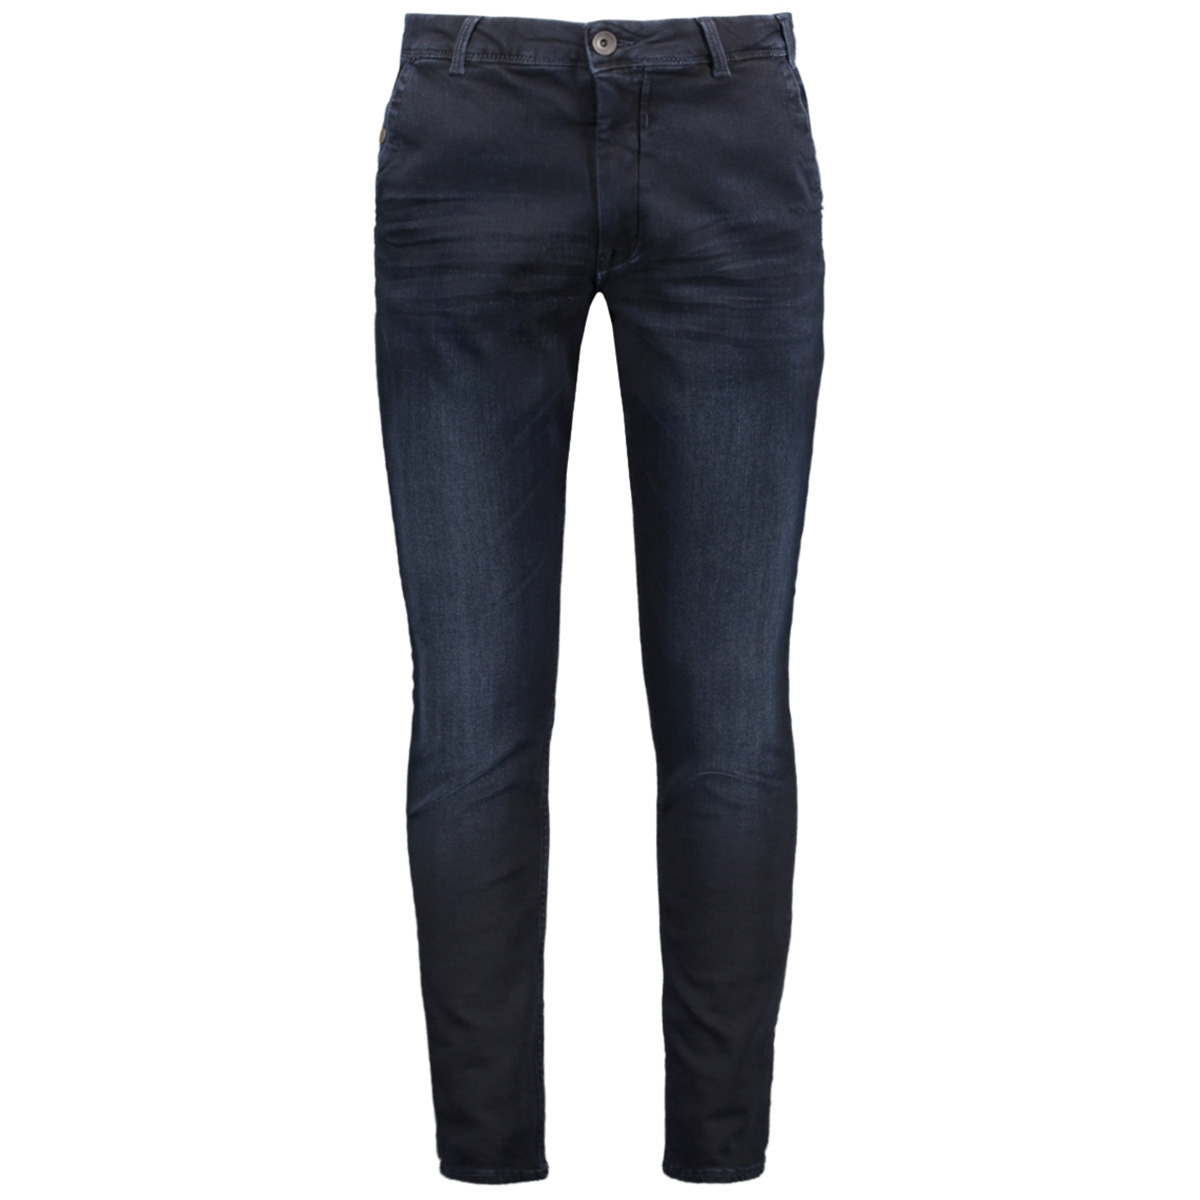 nero chino 670 garcia jeans dark used 8247